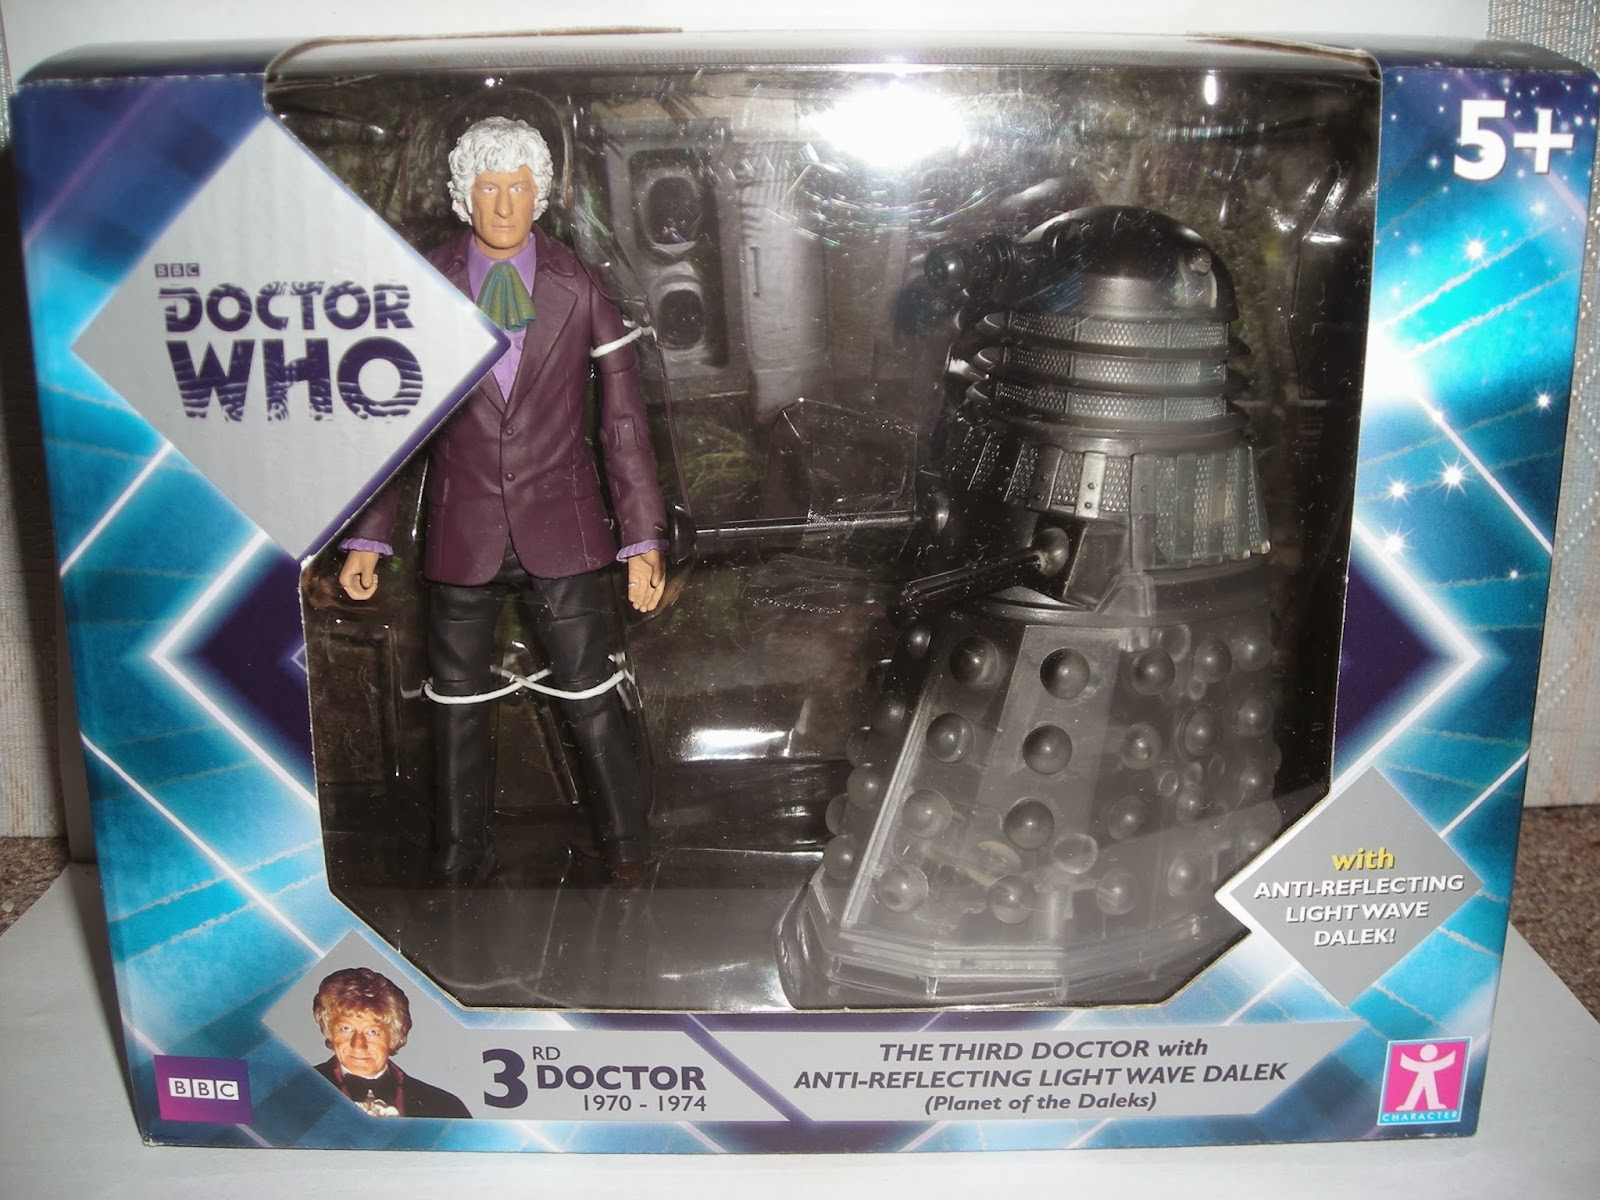 Standard fare Doctor Who packaging